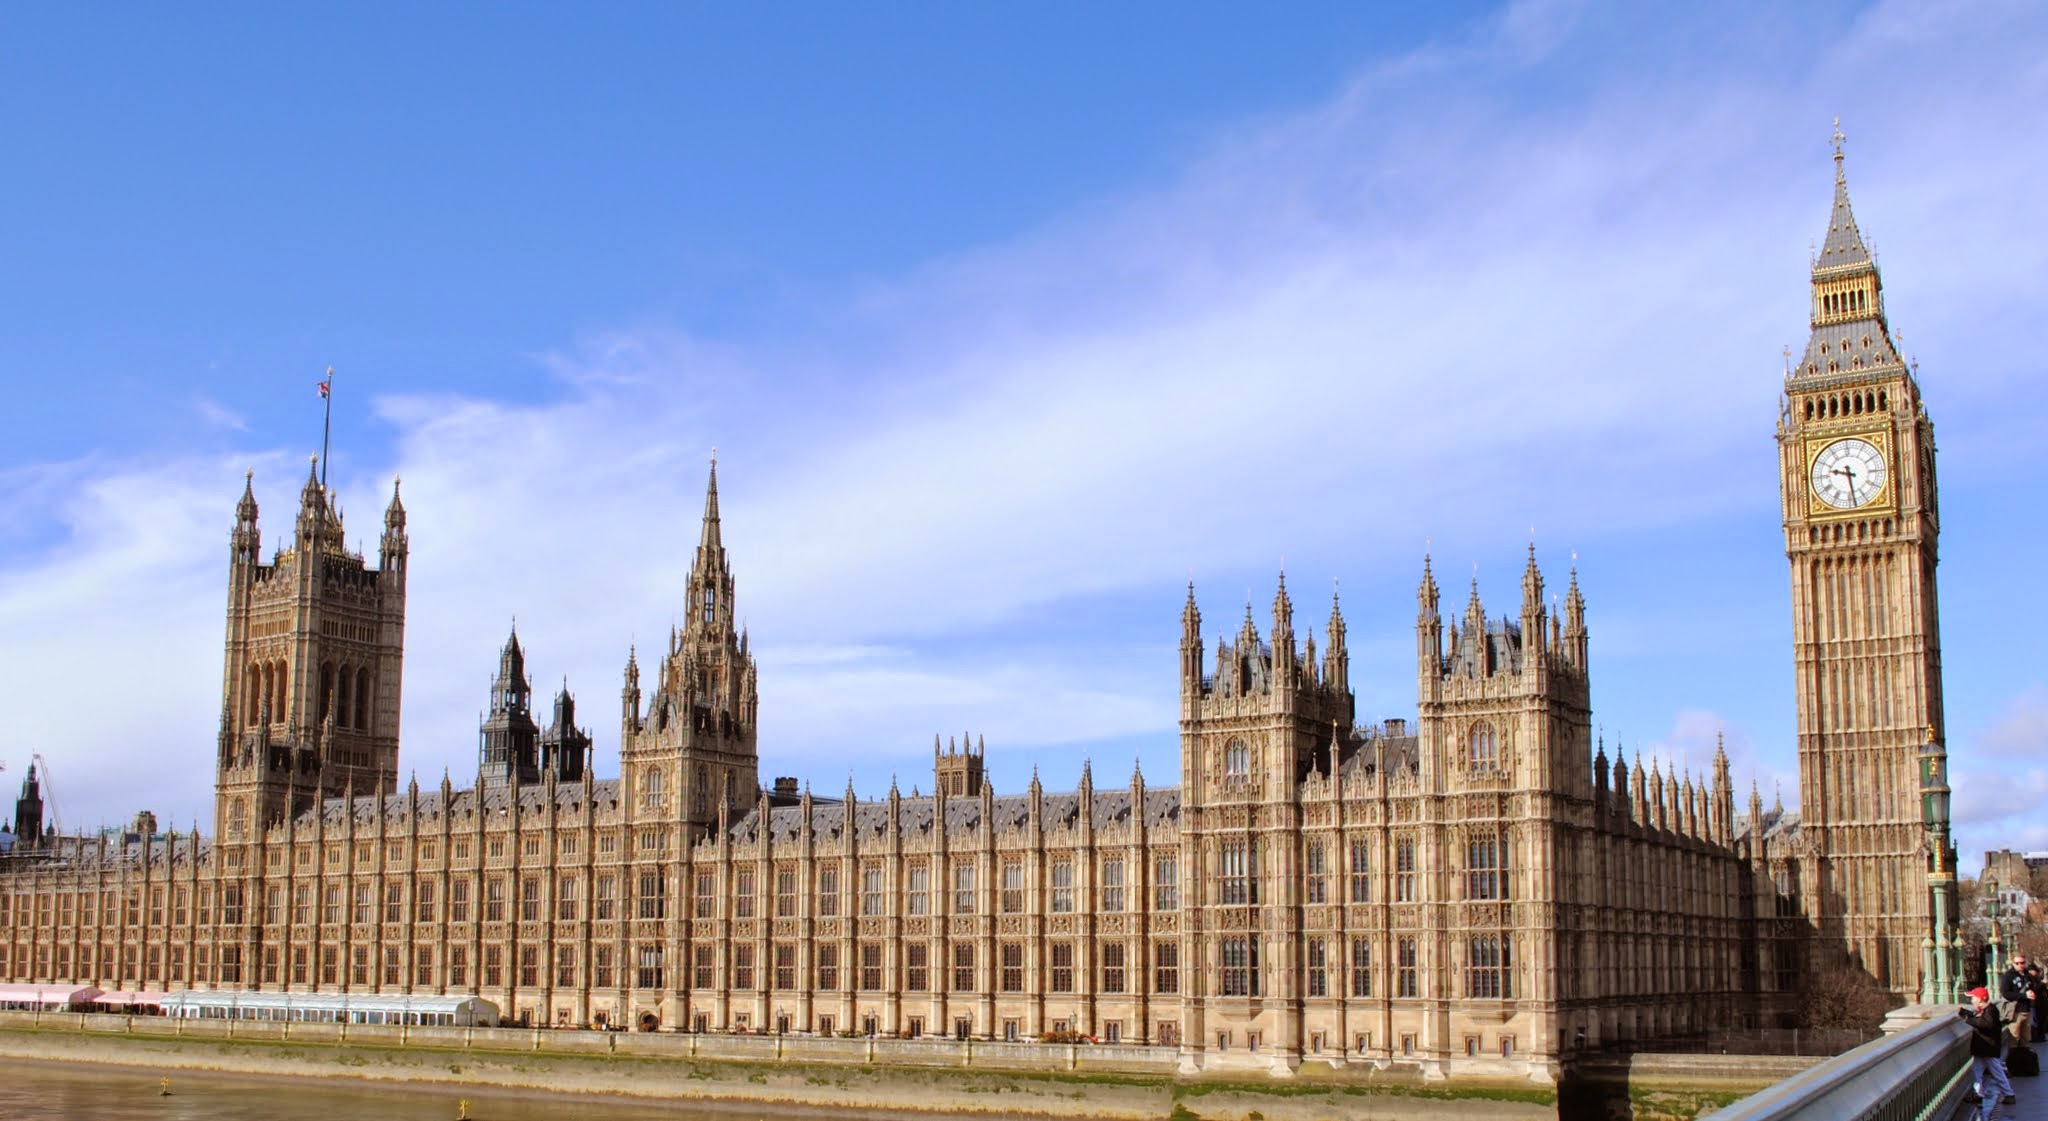 Travel Photos from London -- City Sights